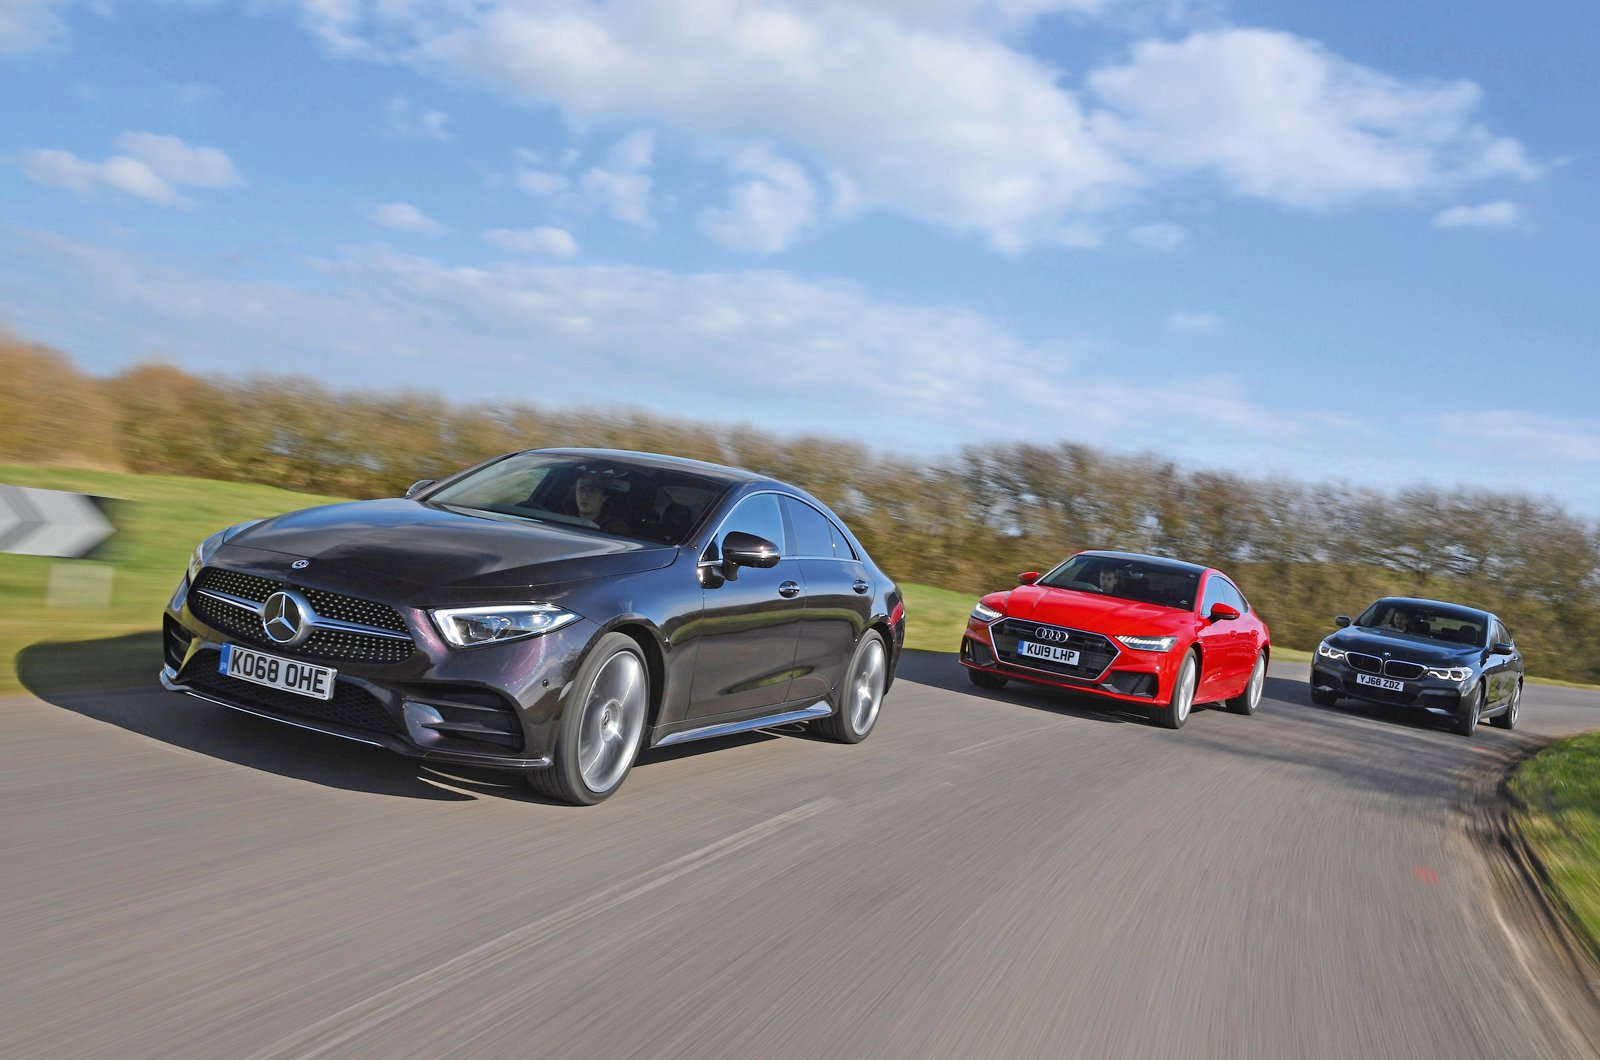 665c563602 Mercedes CLS leading Audi A7 Sportback and BMW 6 Series GT